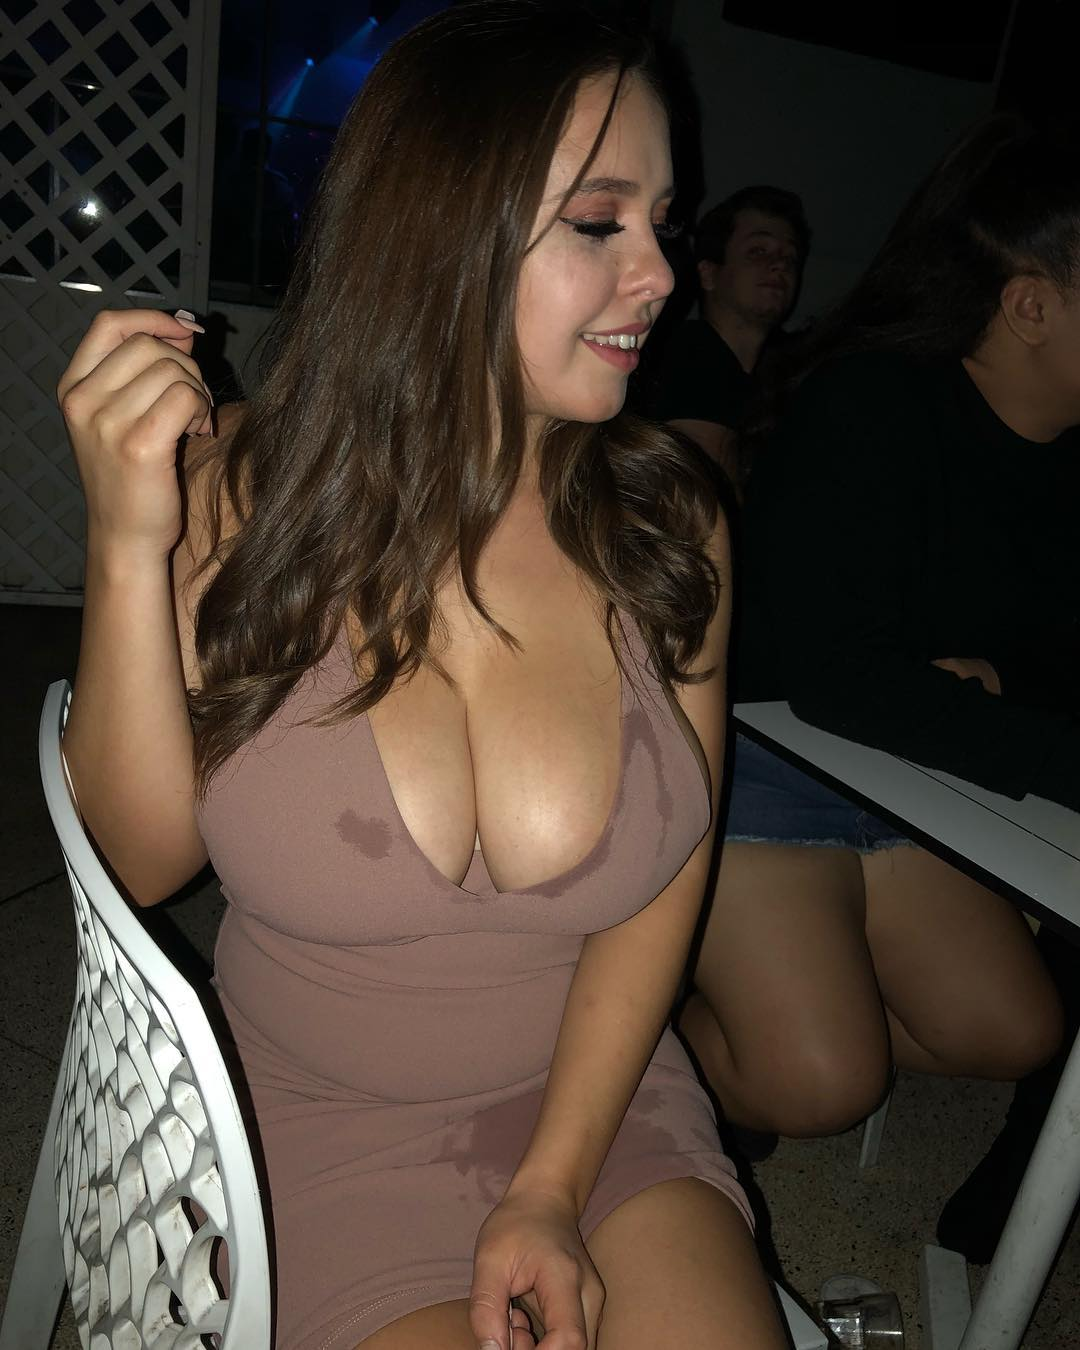 Free nude celebrity pictures selena gomez classy sexy cleavage with no bra